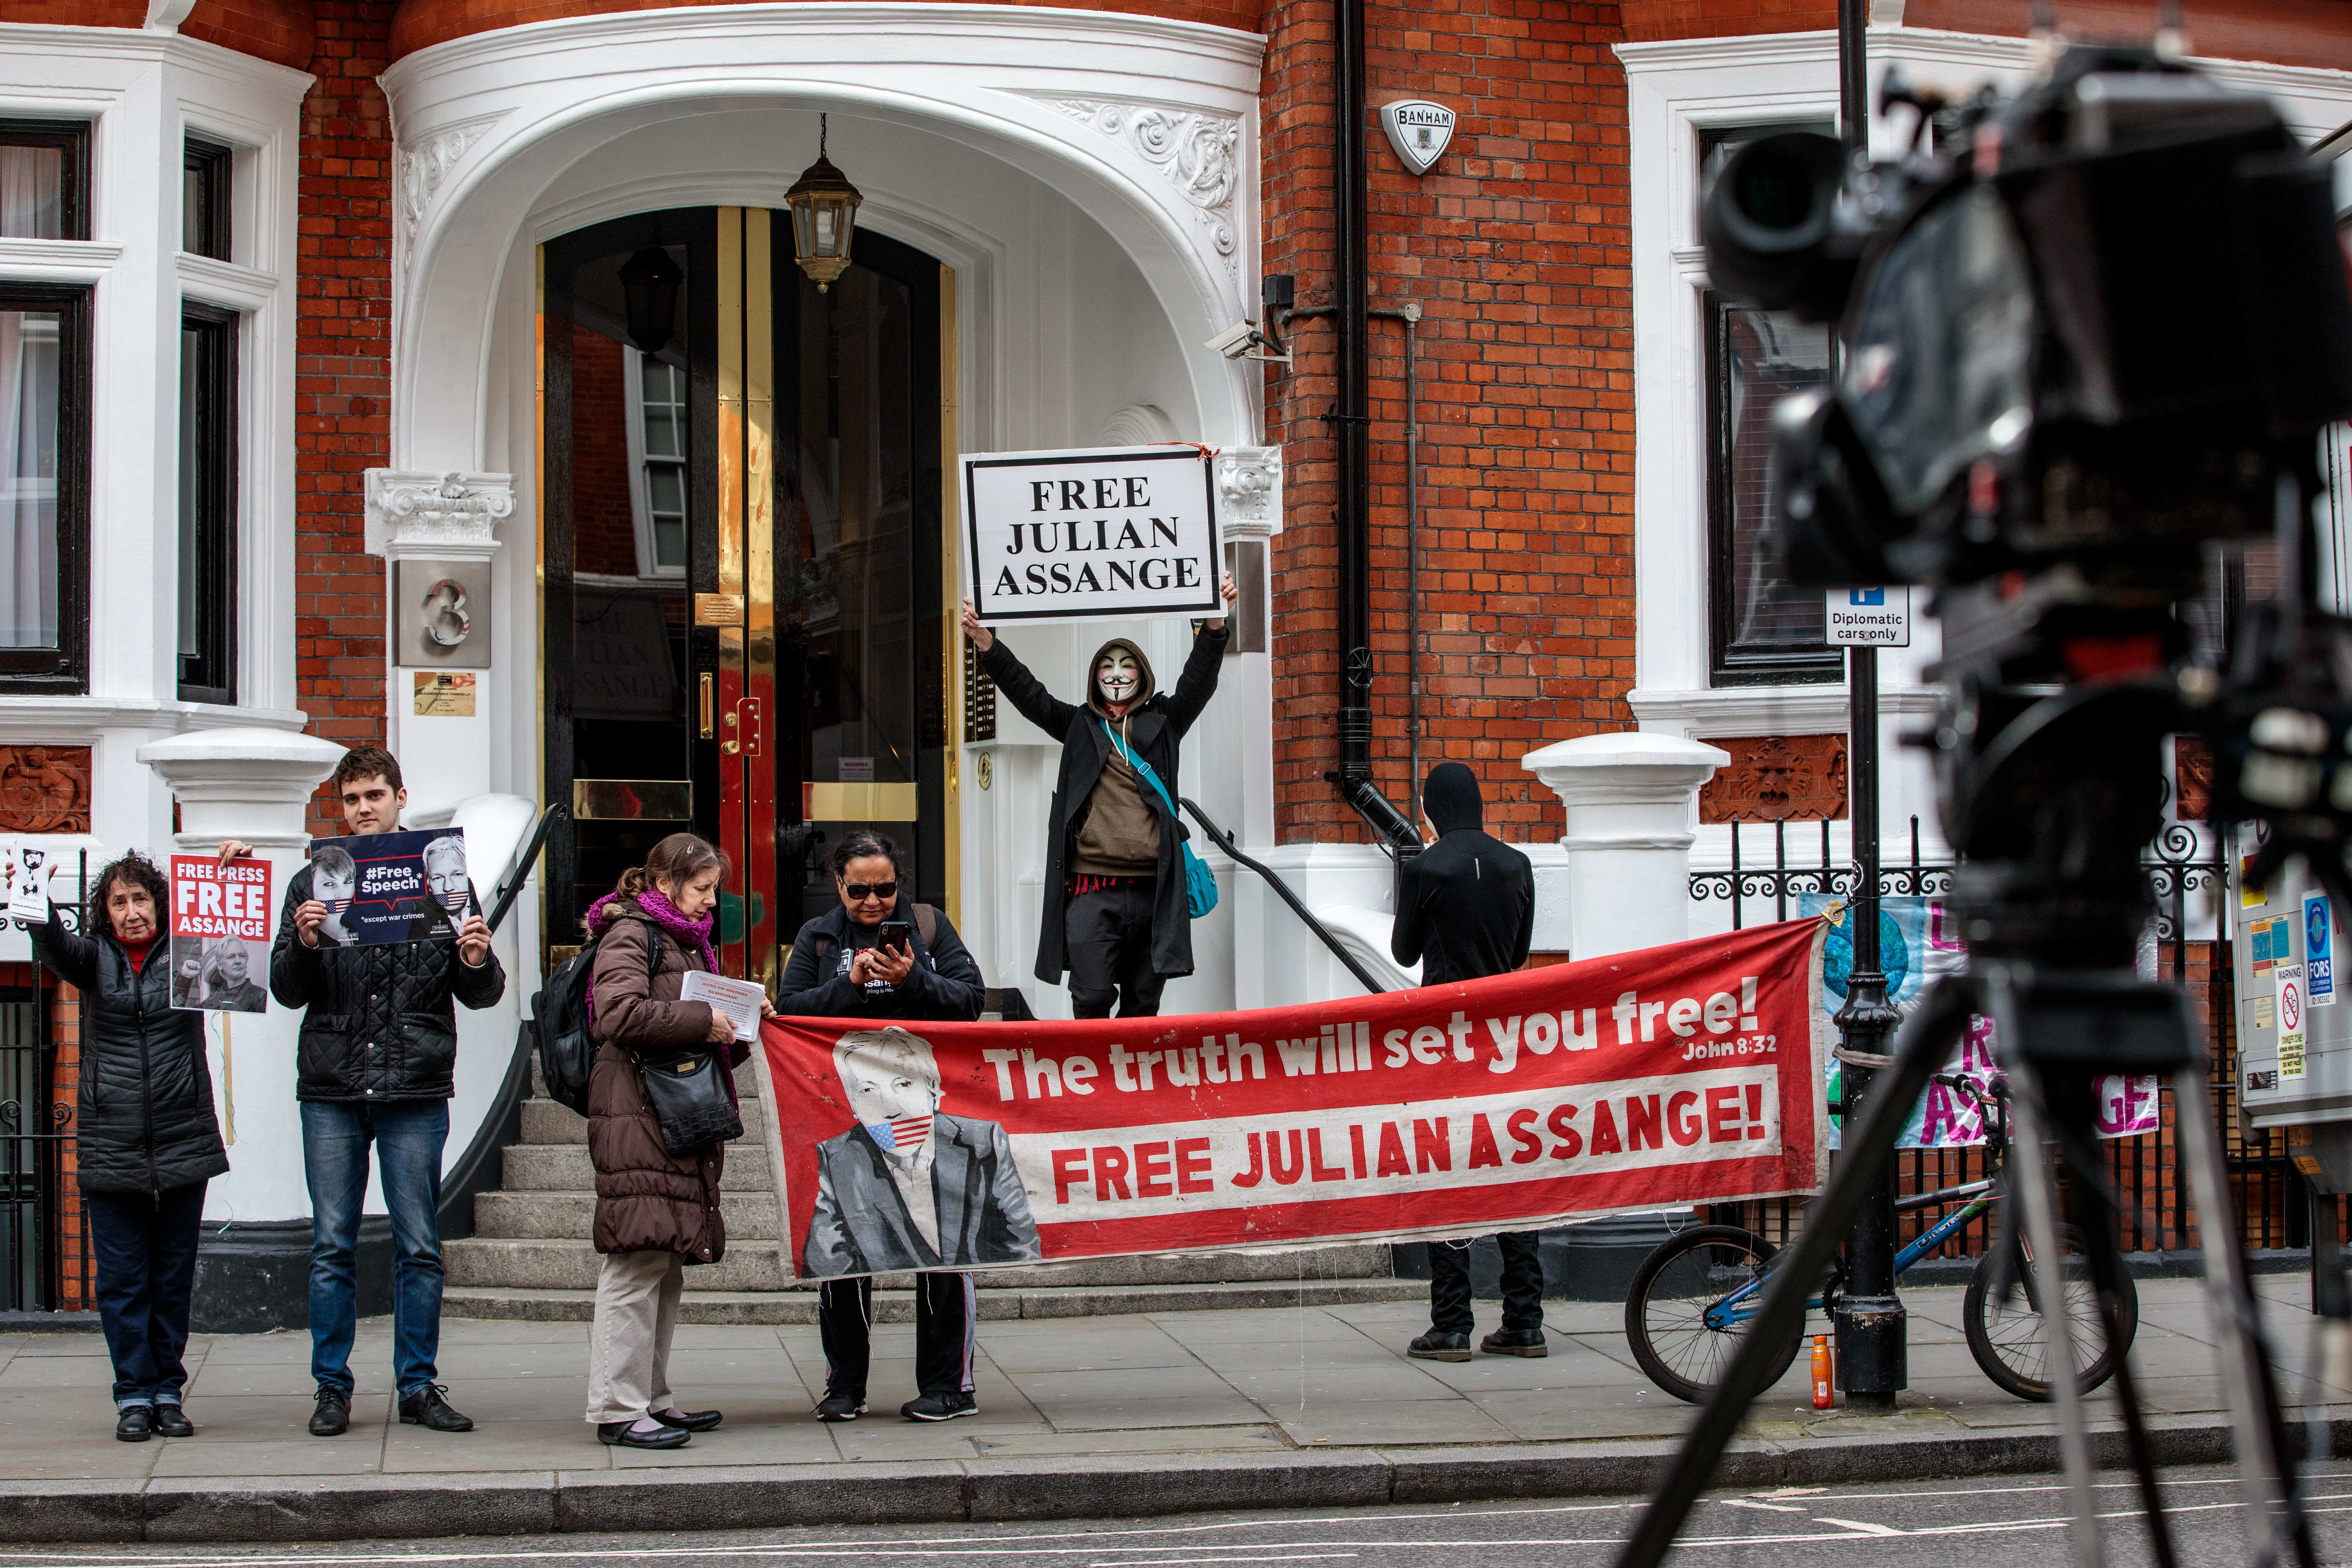 "LONDON, ENGLAND - APRIL 05: Protesters demonstrate in support of Julian Assange outside the Ecuadorian Embassy in South Kensington on April 5, 2019 in London, England. Wikileaks said via their Twitter account on Thursday that the organization's founder Julian Assange, who has been holed up in the embassy since 2012, will be expelled from there within ""hours to days."" (Photo by Jack Taylor/Getty Images)"